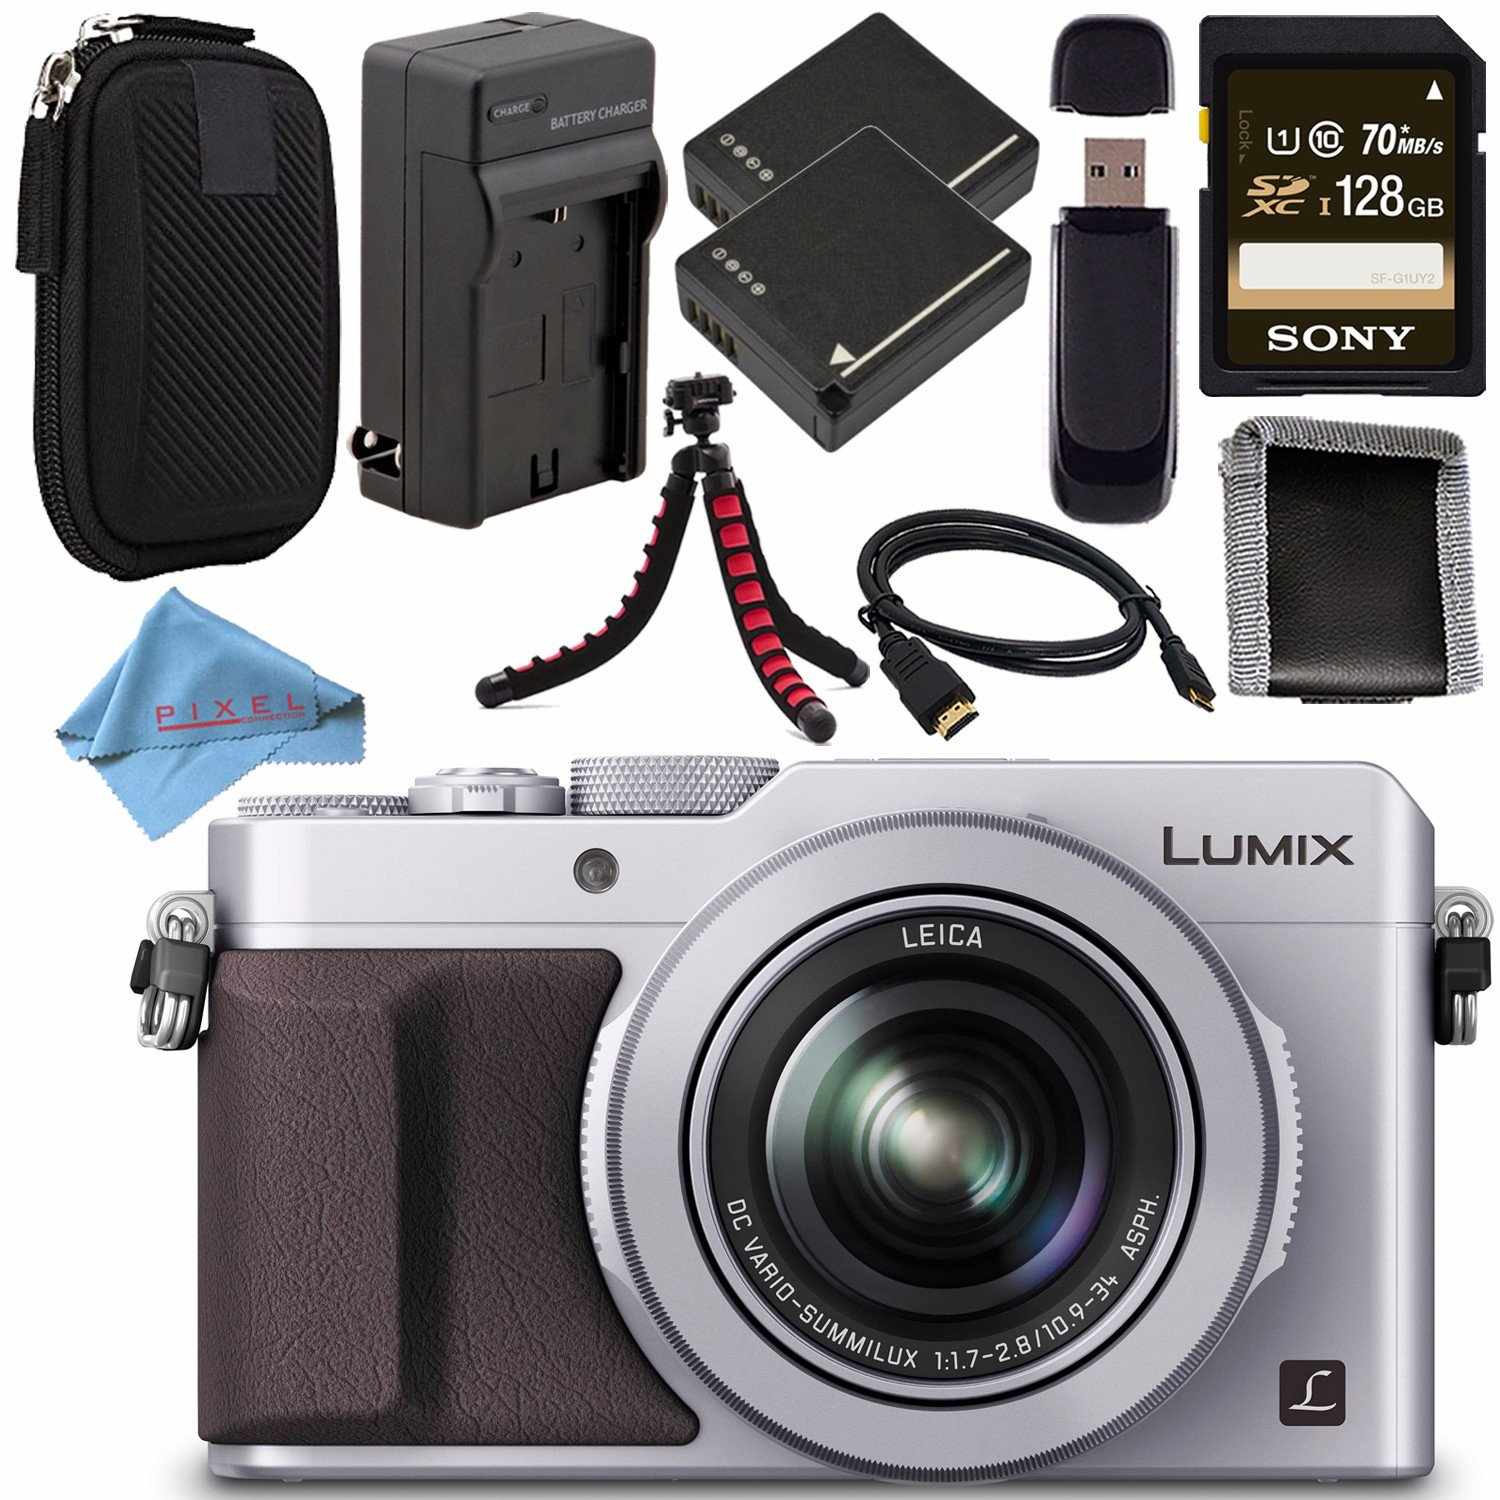 Amazon.com: Panasonic Lumix DMC-LX100 dmc-lx100s (Plata) + ...